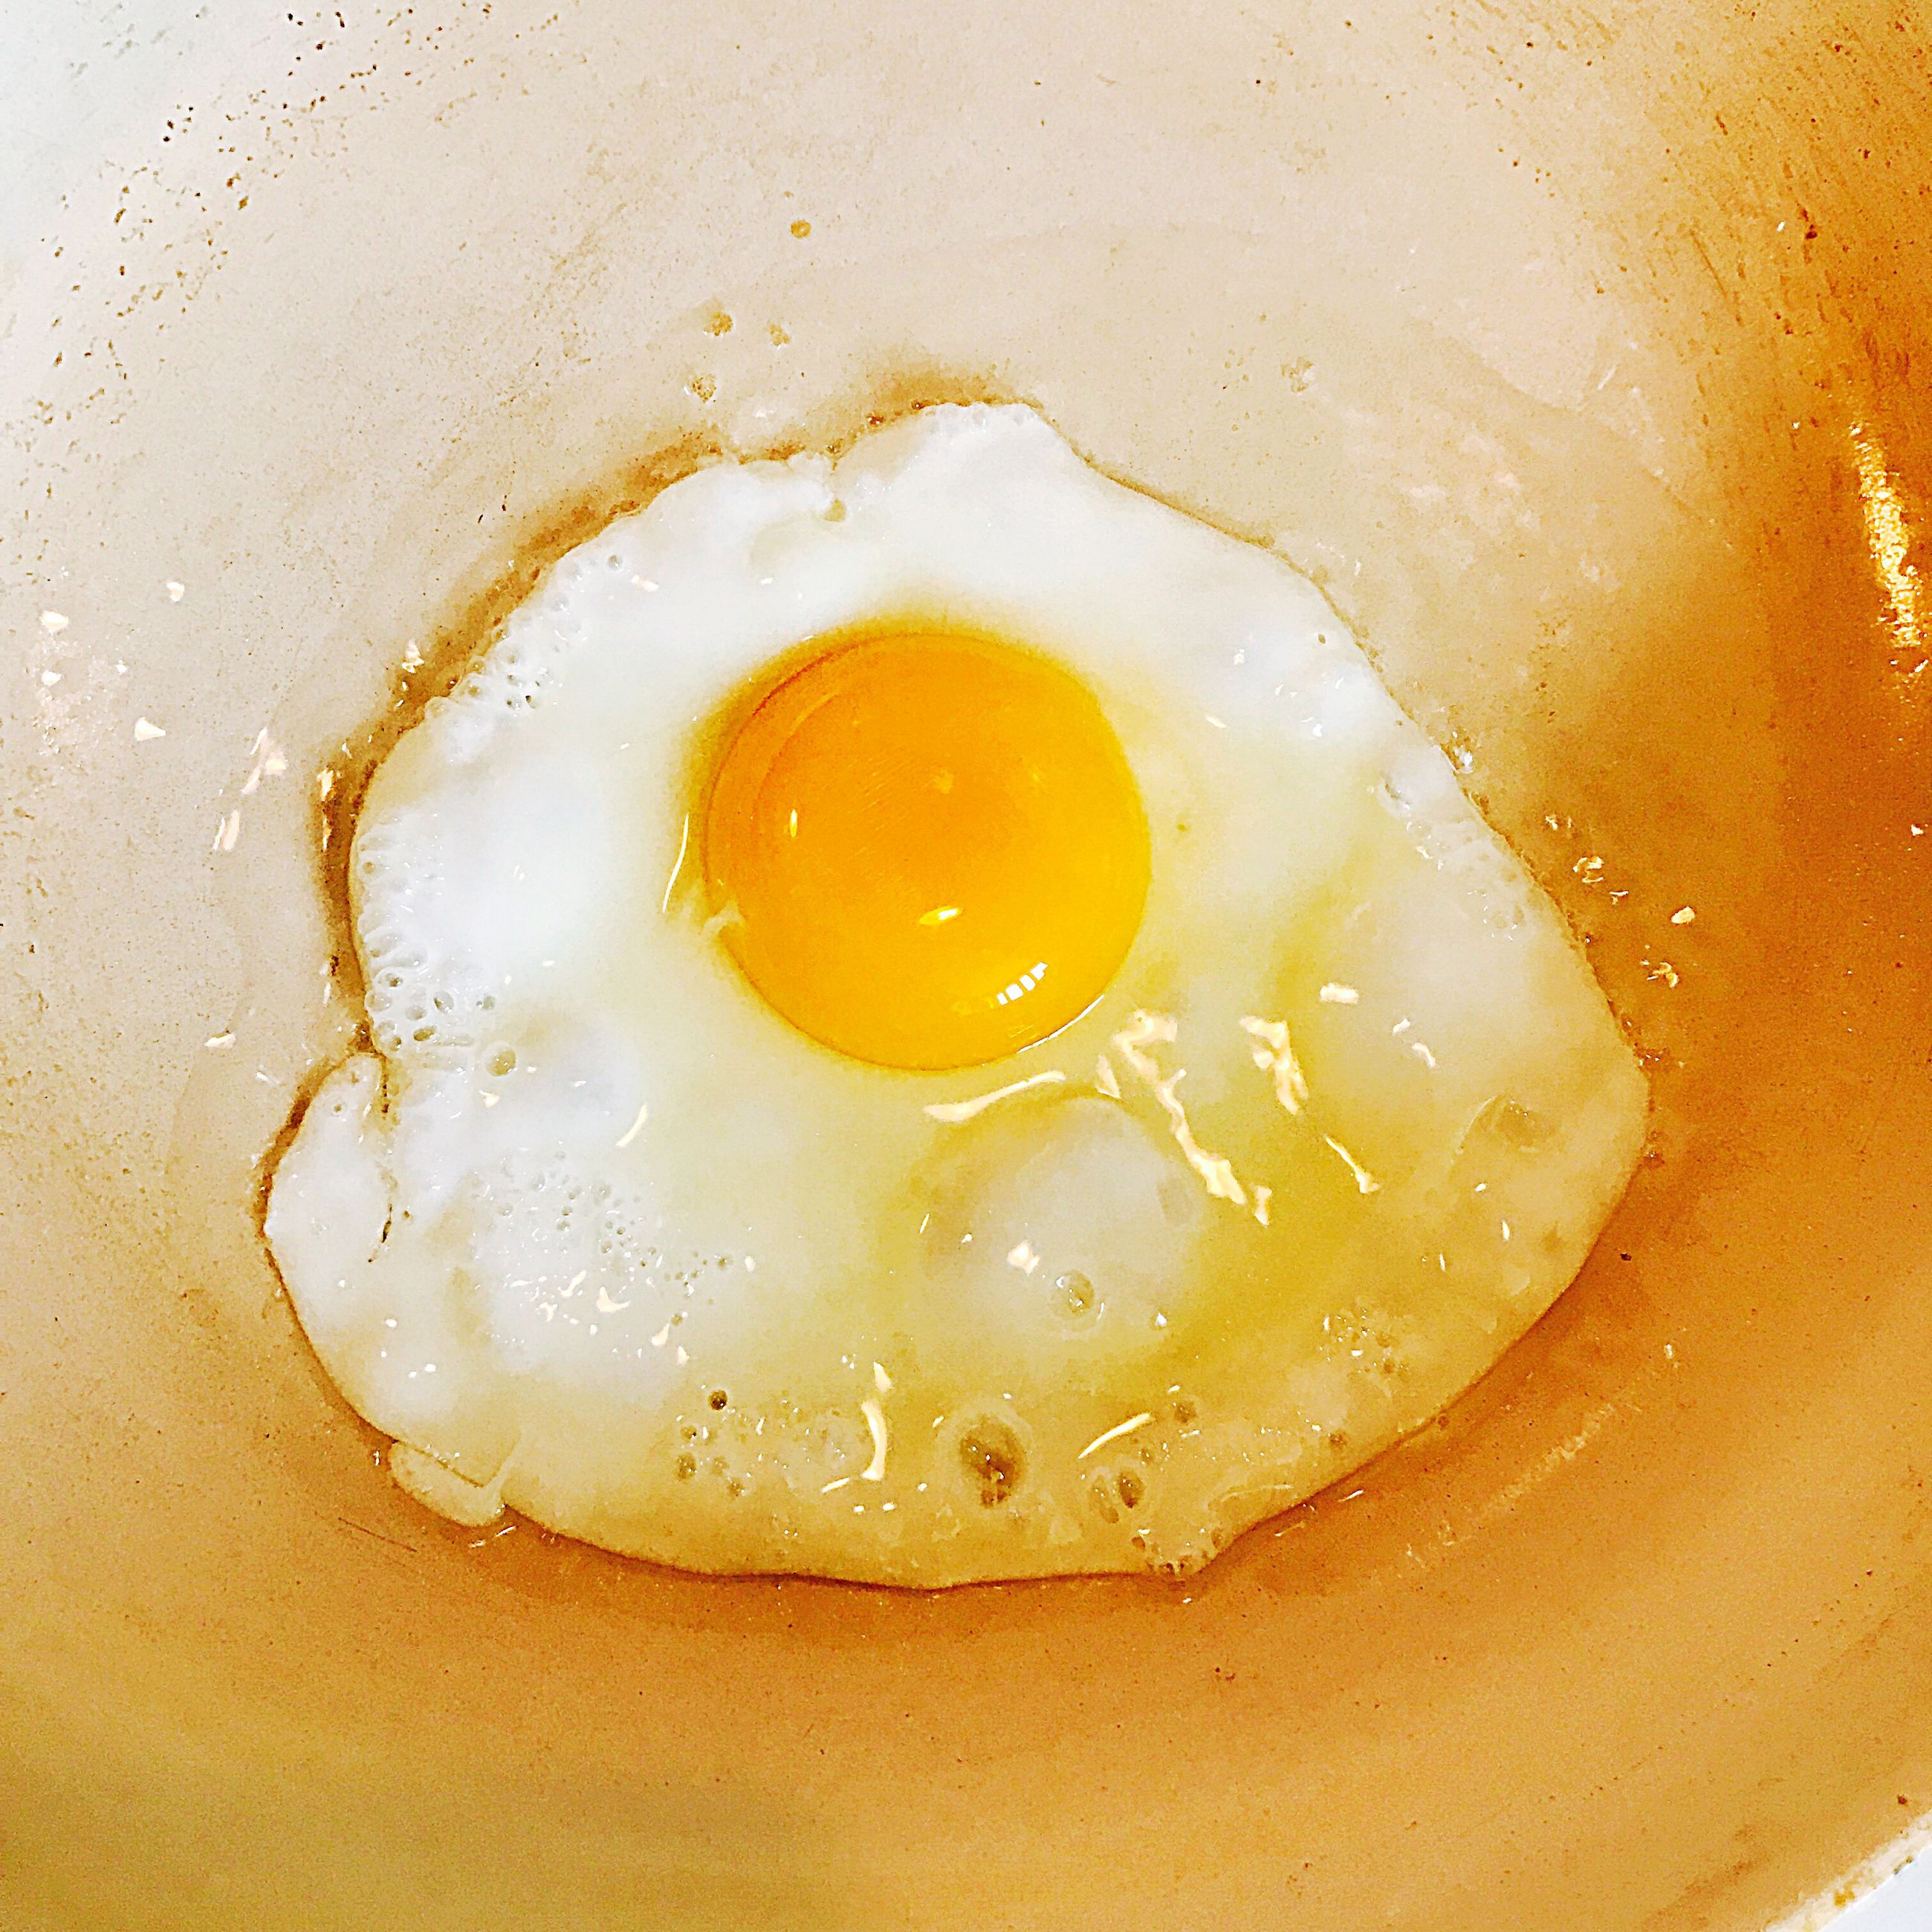 egg, food and drink, egg yolk, food, yellow, fried egg, indoors, no people, preparation, healthy eating, breakfast, freshness, egg white, close-up, sunny side up, day